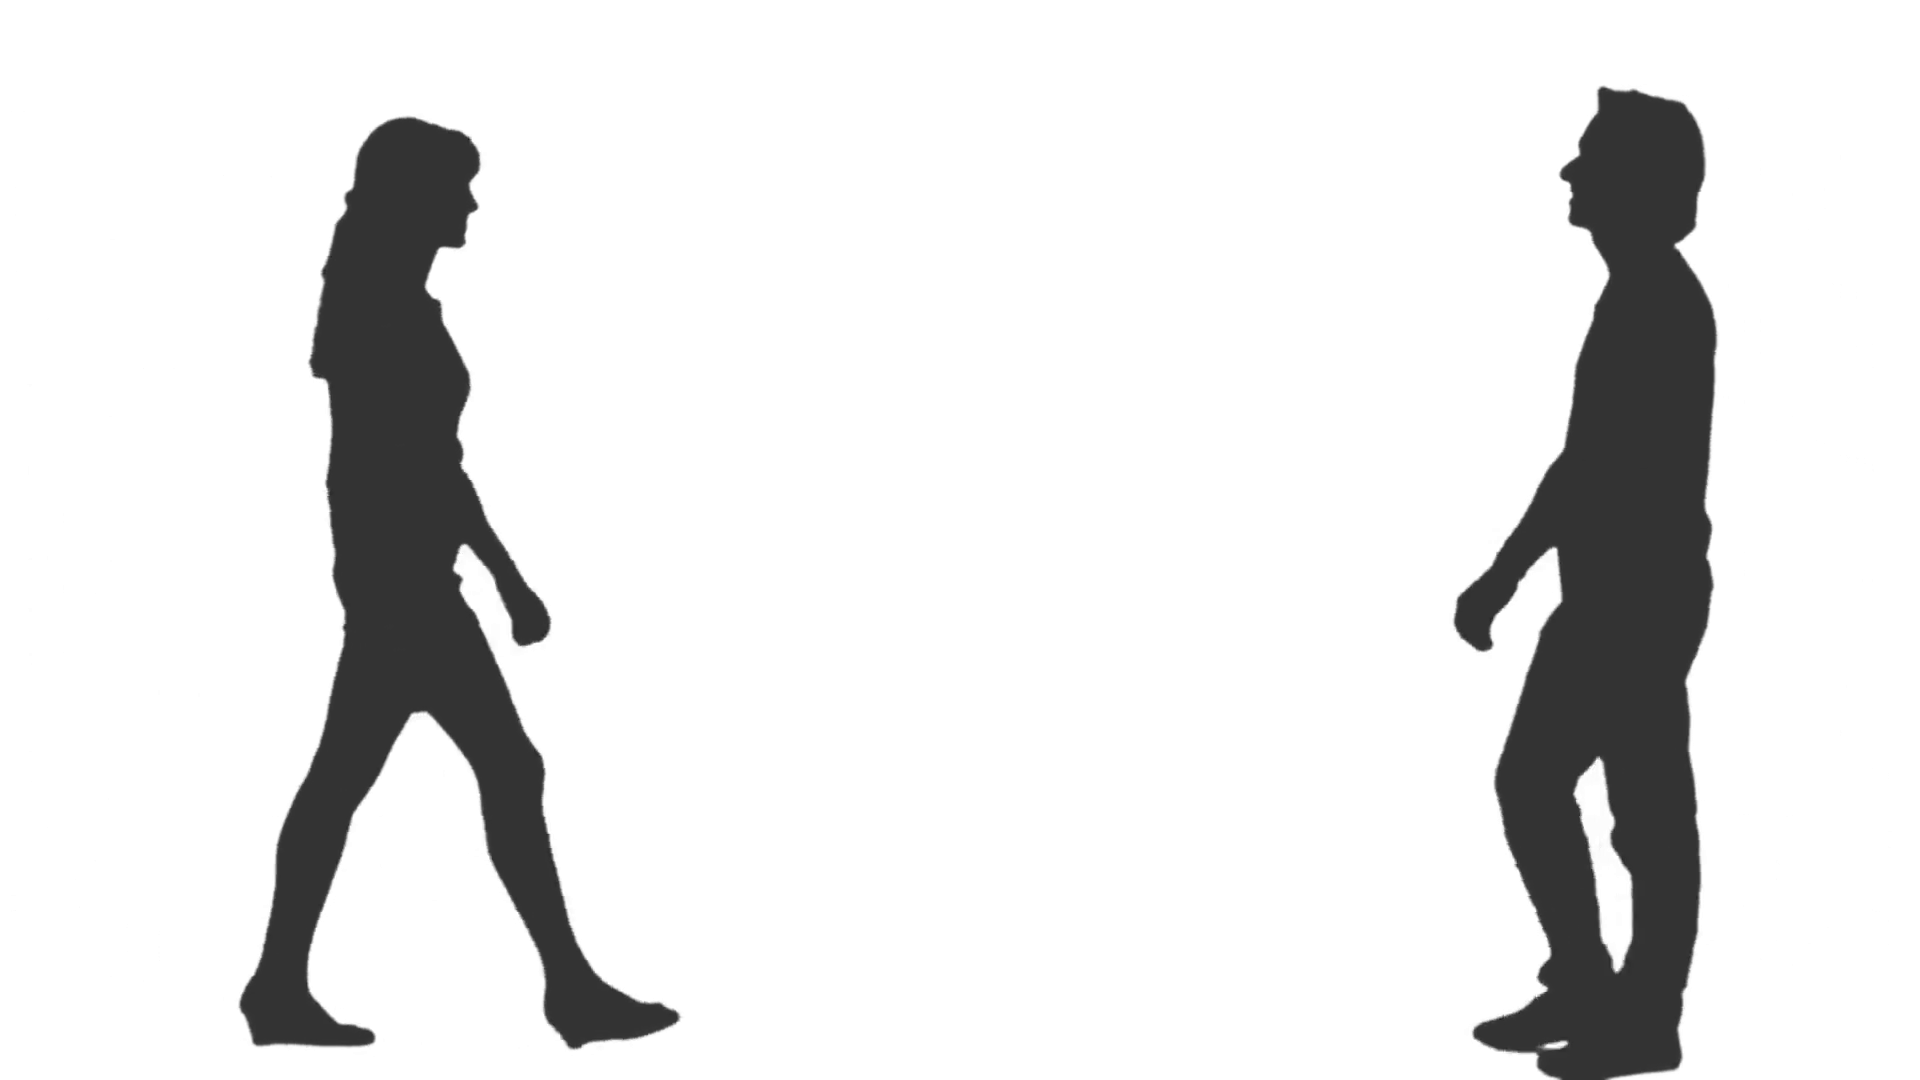 1920x1080 Silhouette Of A Male Amp Female Going To Meet Each Other Amp Kissing